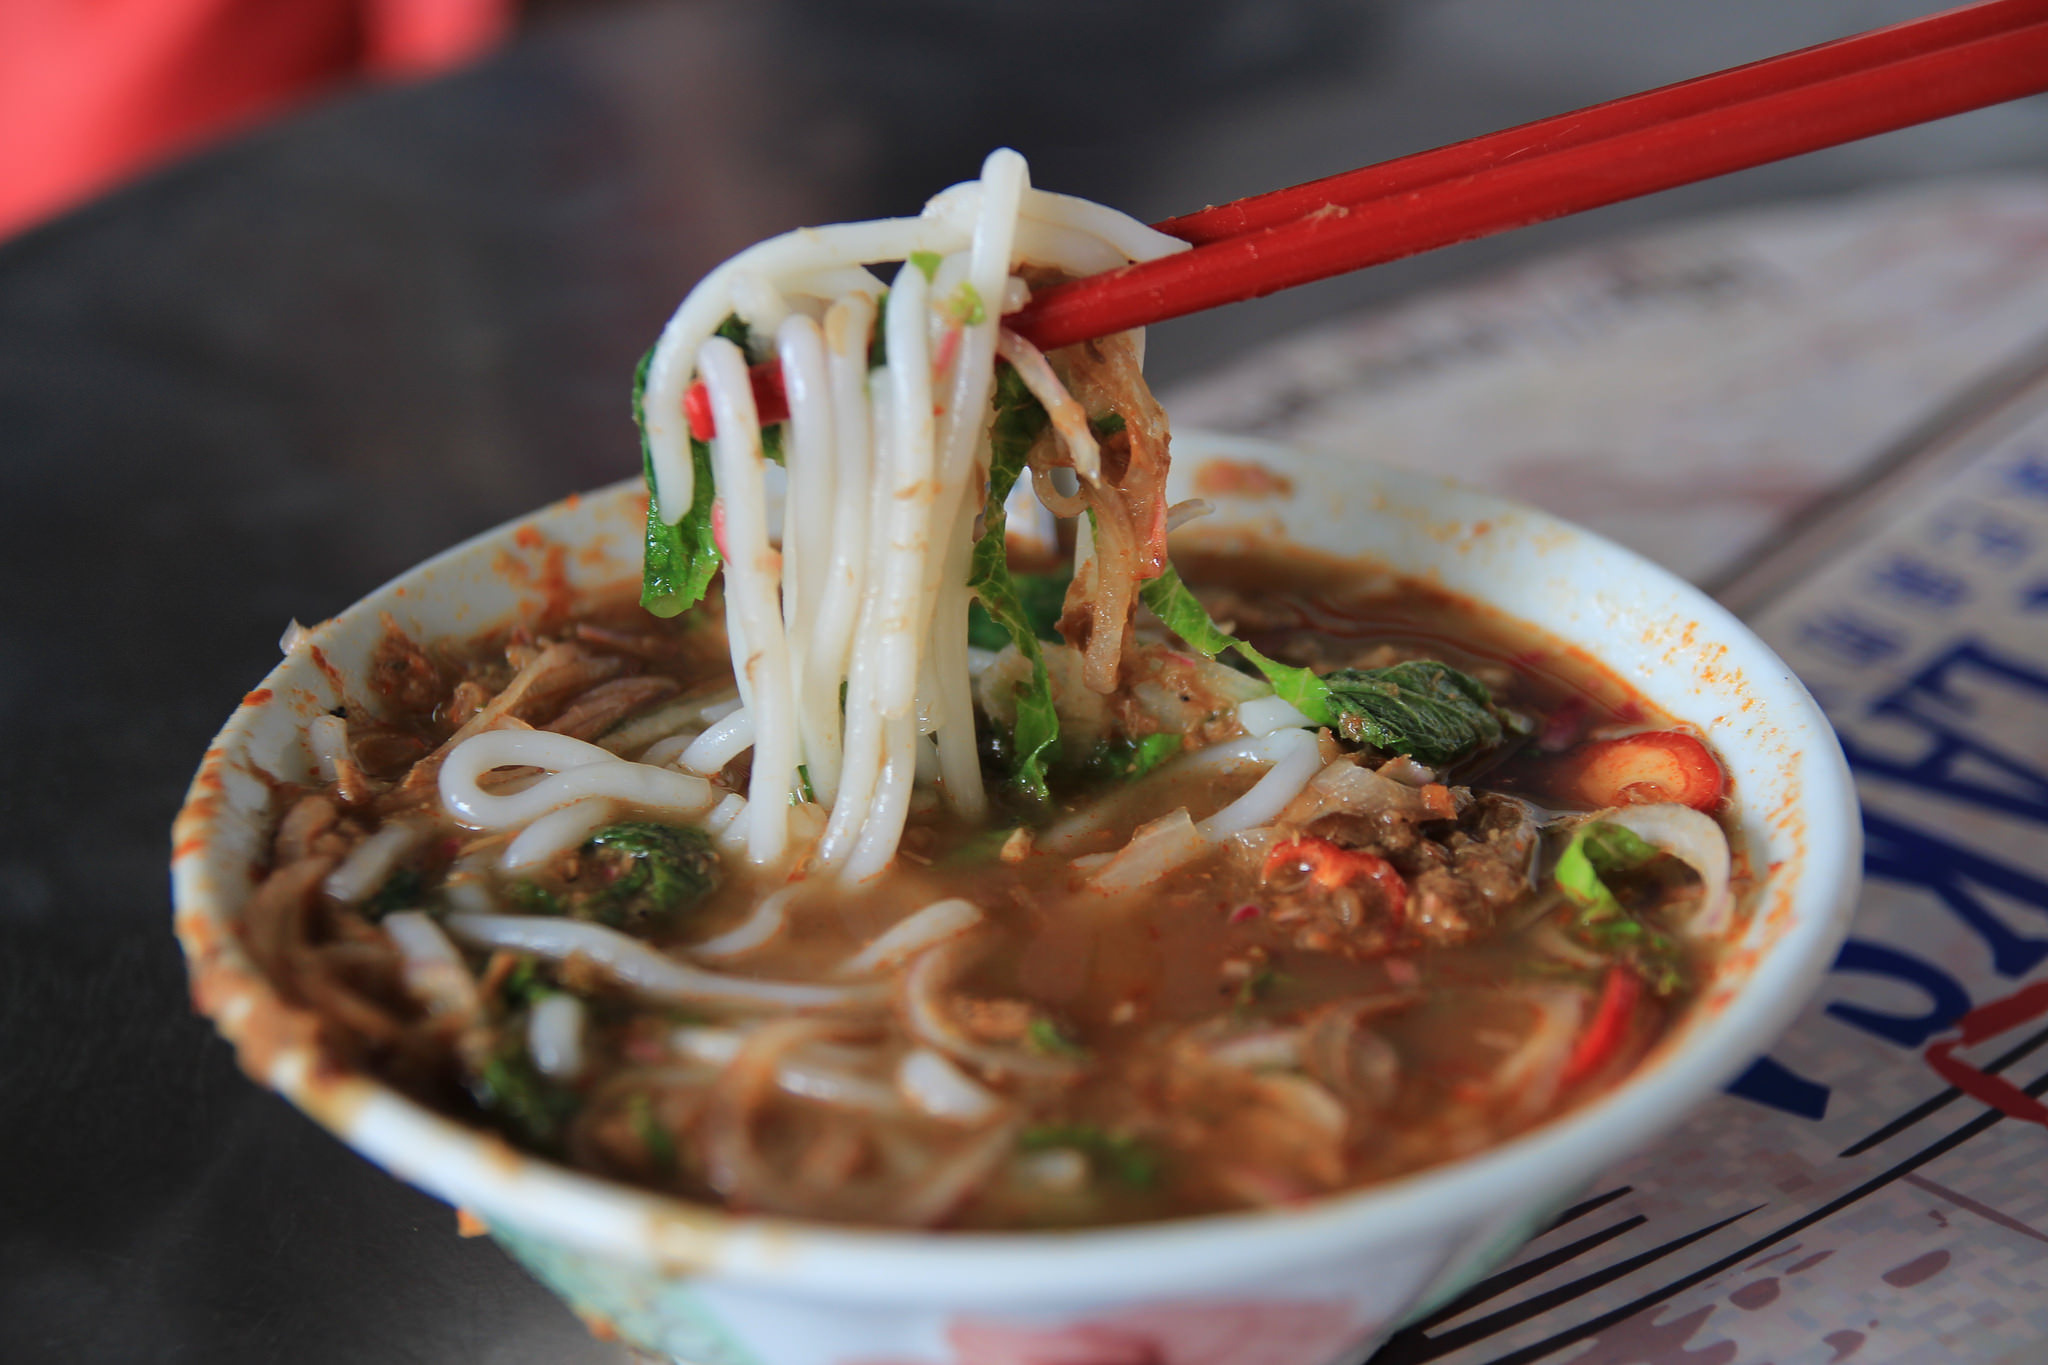 Asam laksa wins 7th place in CNN Travel list